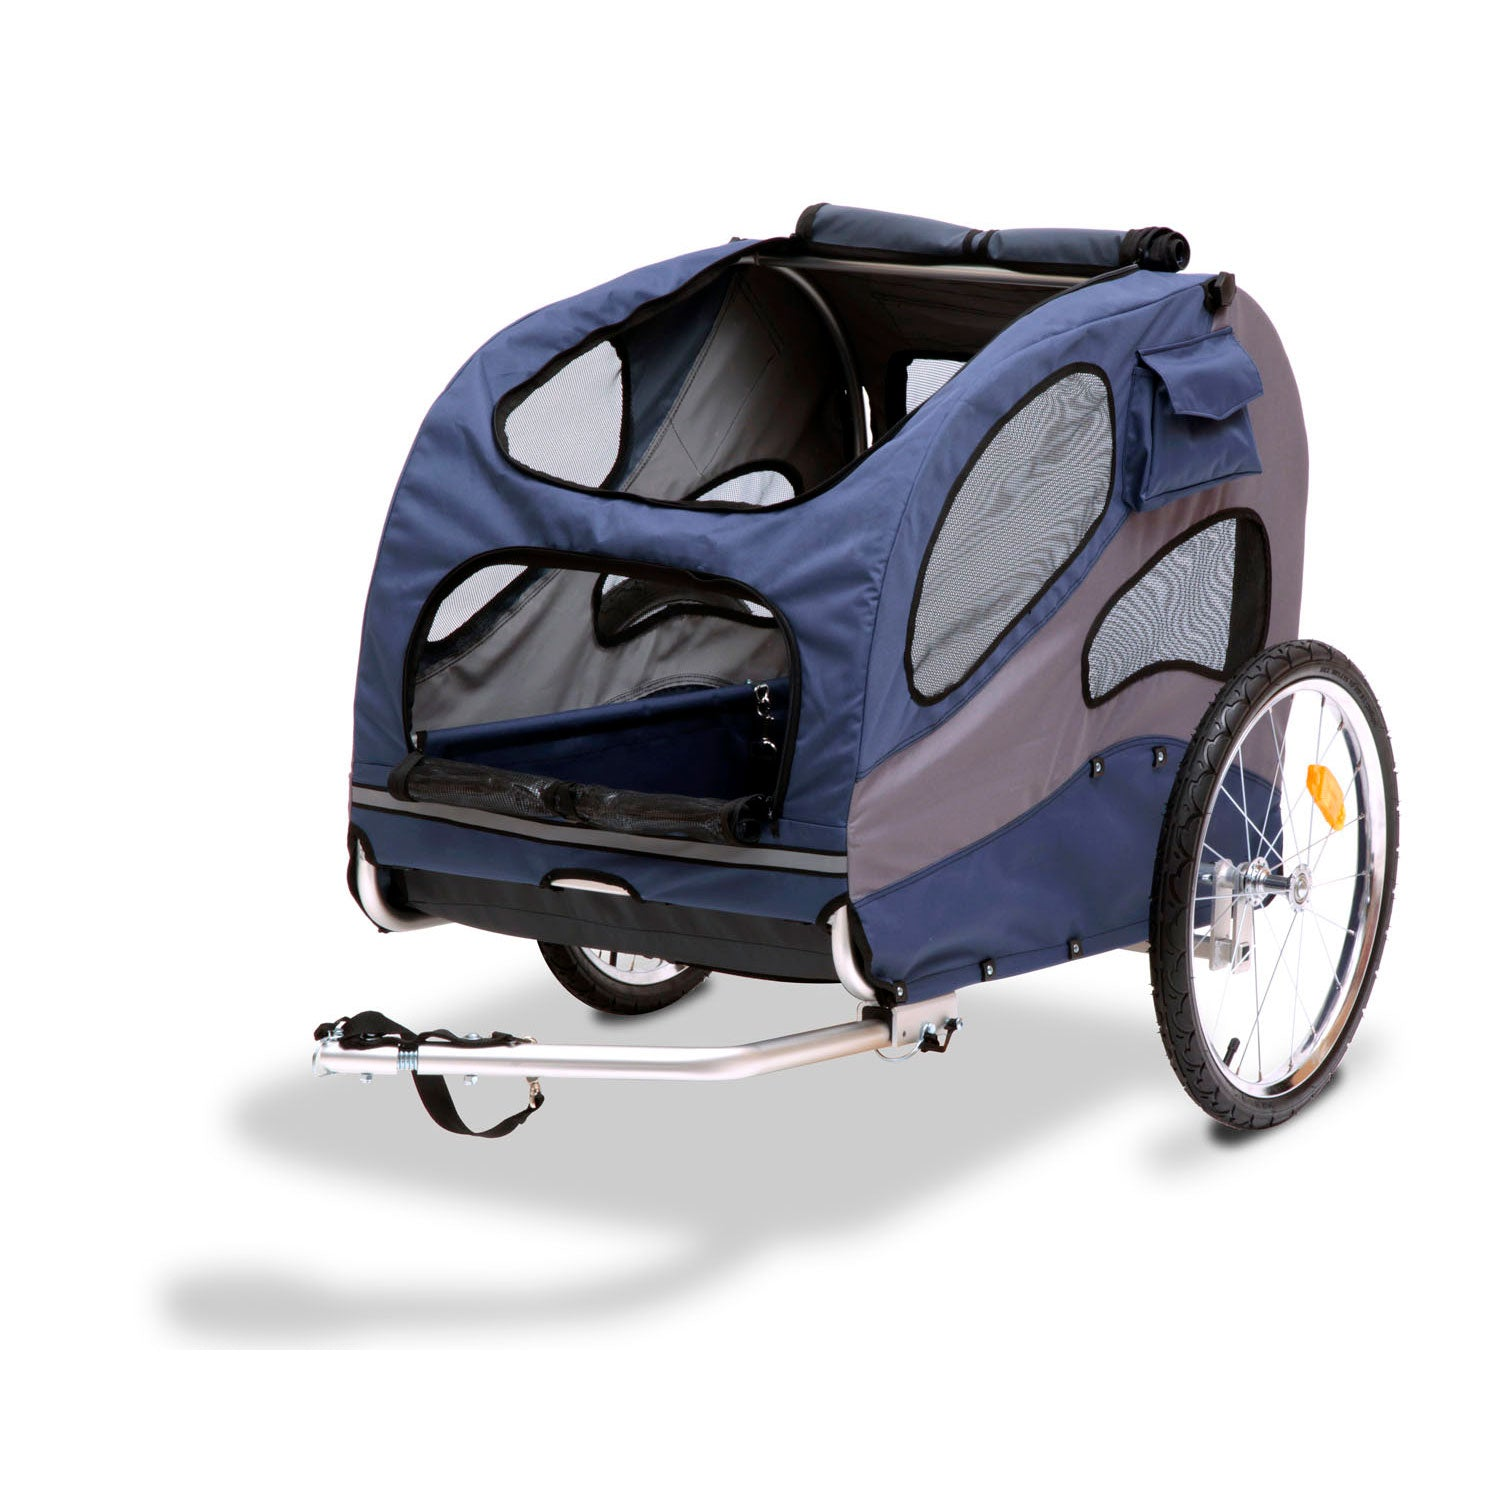 PetSafe-Solvit HoundAbout II Bicycle Trailer-Large-Blue-Comfort-Dog-Travel